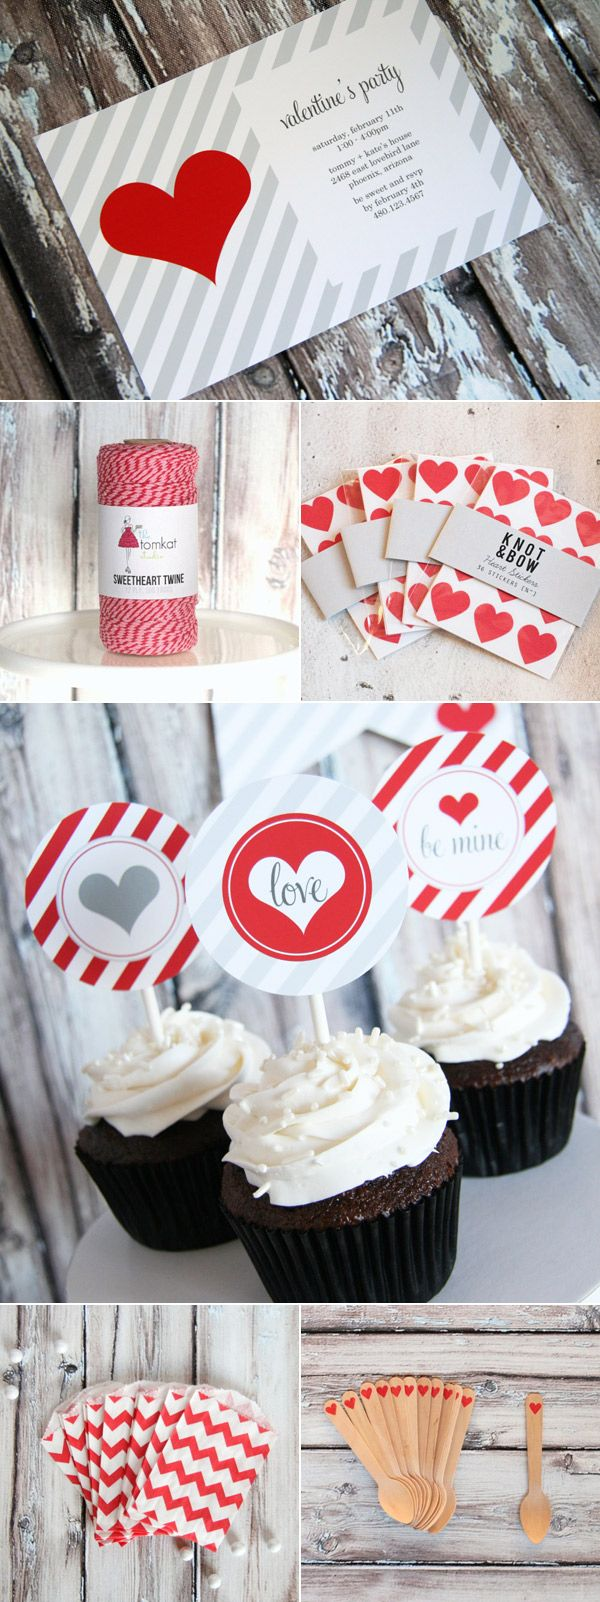 Valentines Day party goodies from @The TomKat Studio on The Sweetest Occasion #laylagrayce #holidays #valentines